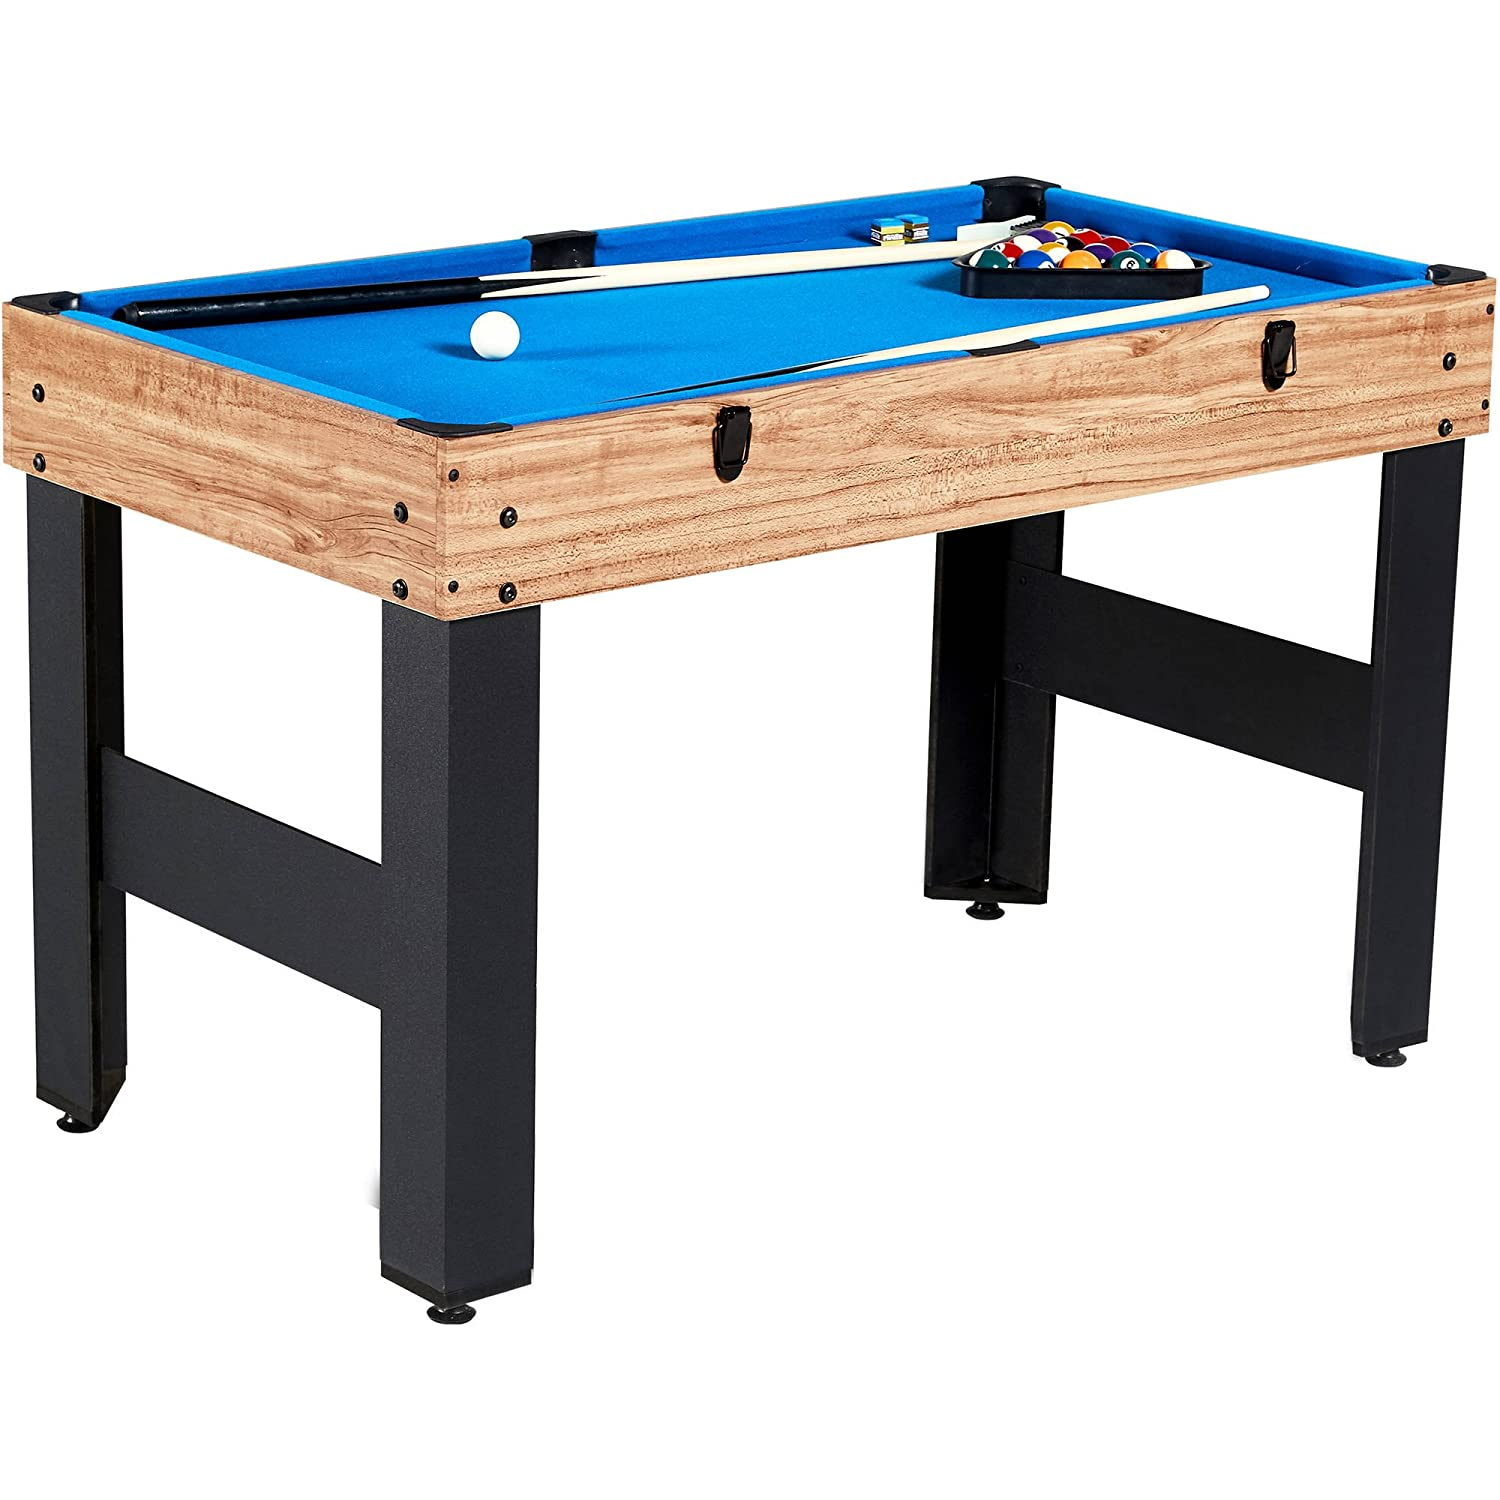 soccer p air hockey pool slate ping pong htm table t